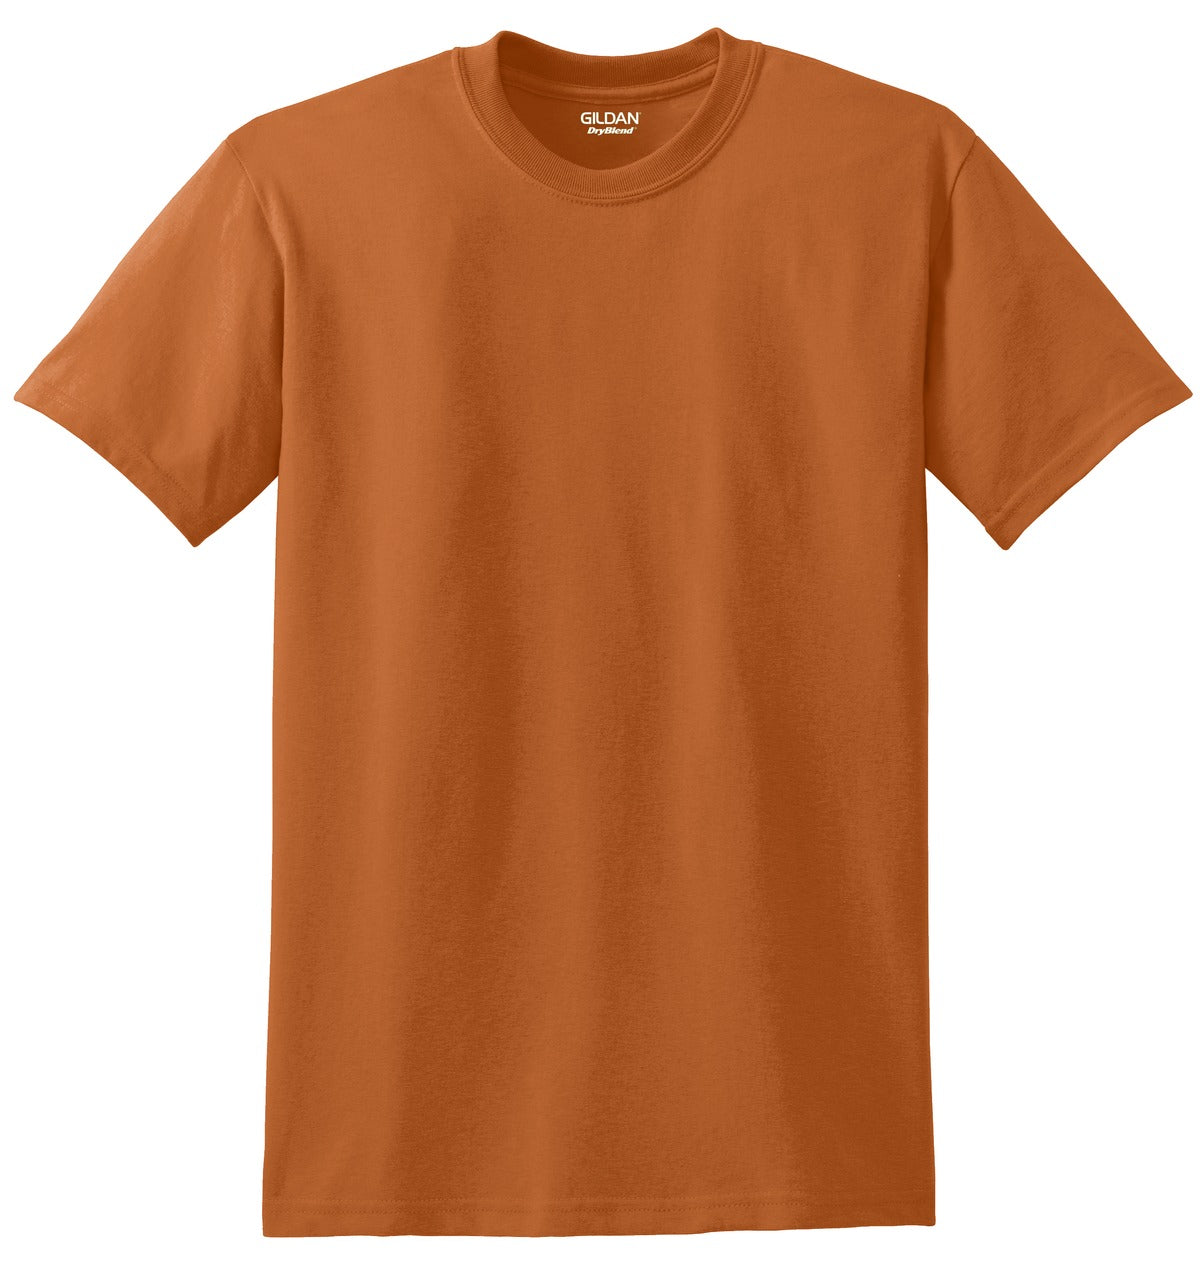 Texas Orange Gildan DryBlend 50 Cotton/50 Poly T-Shirt.